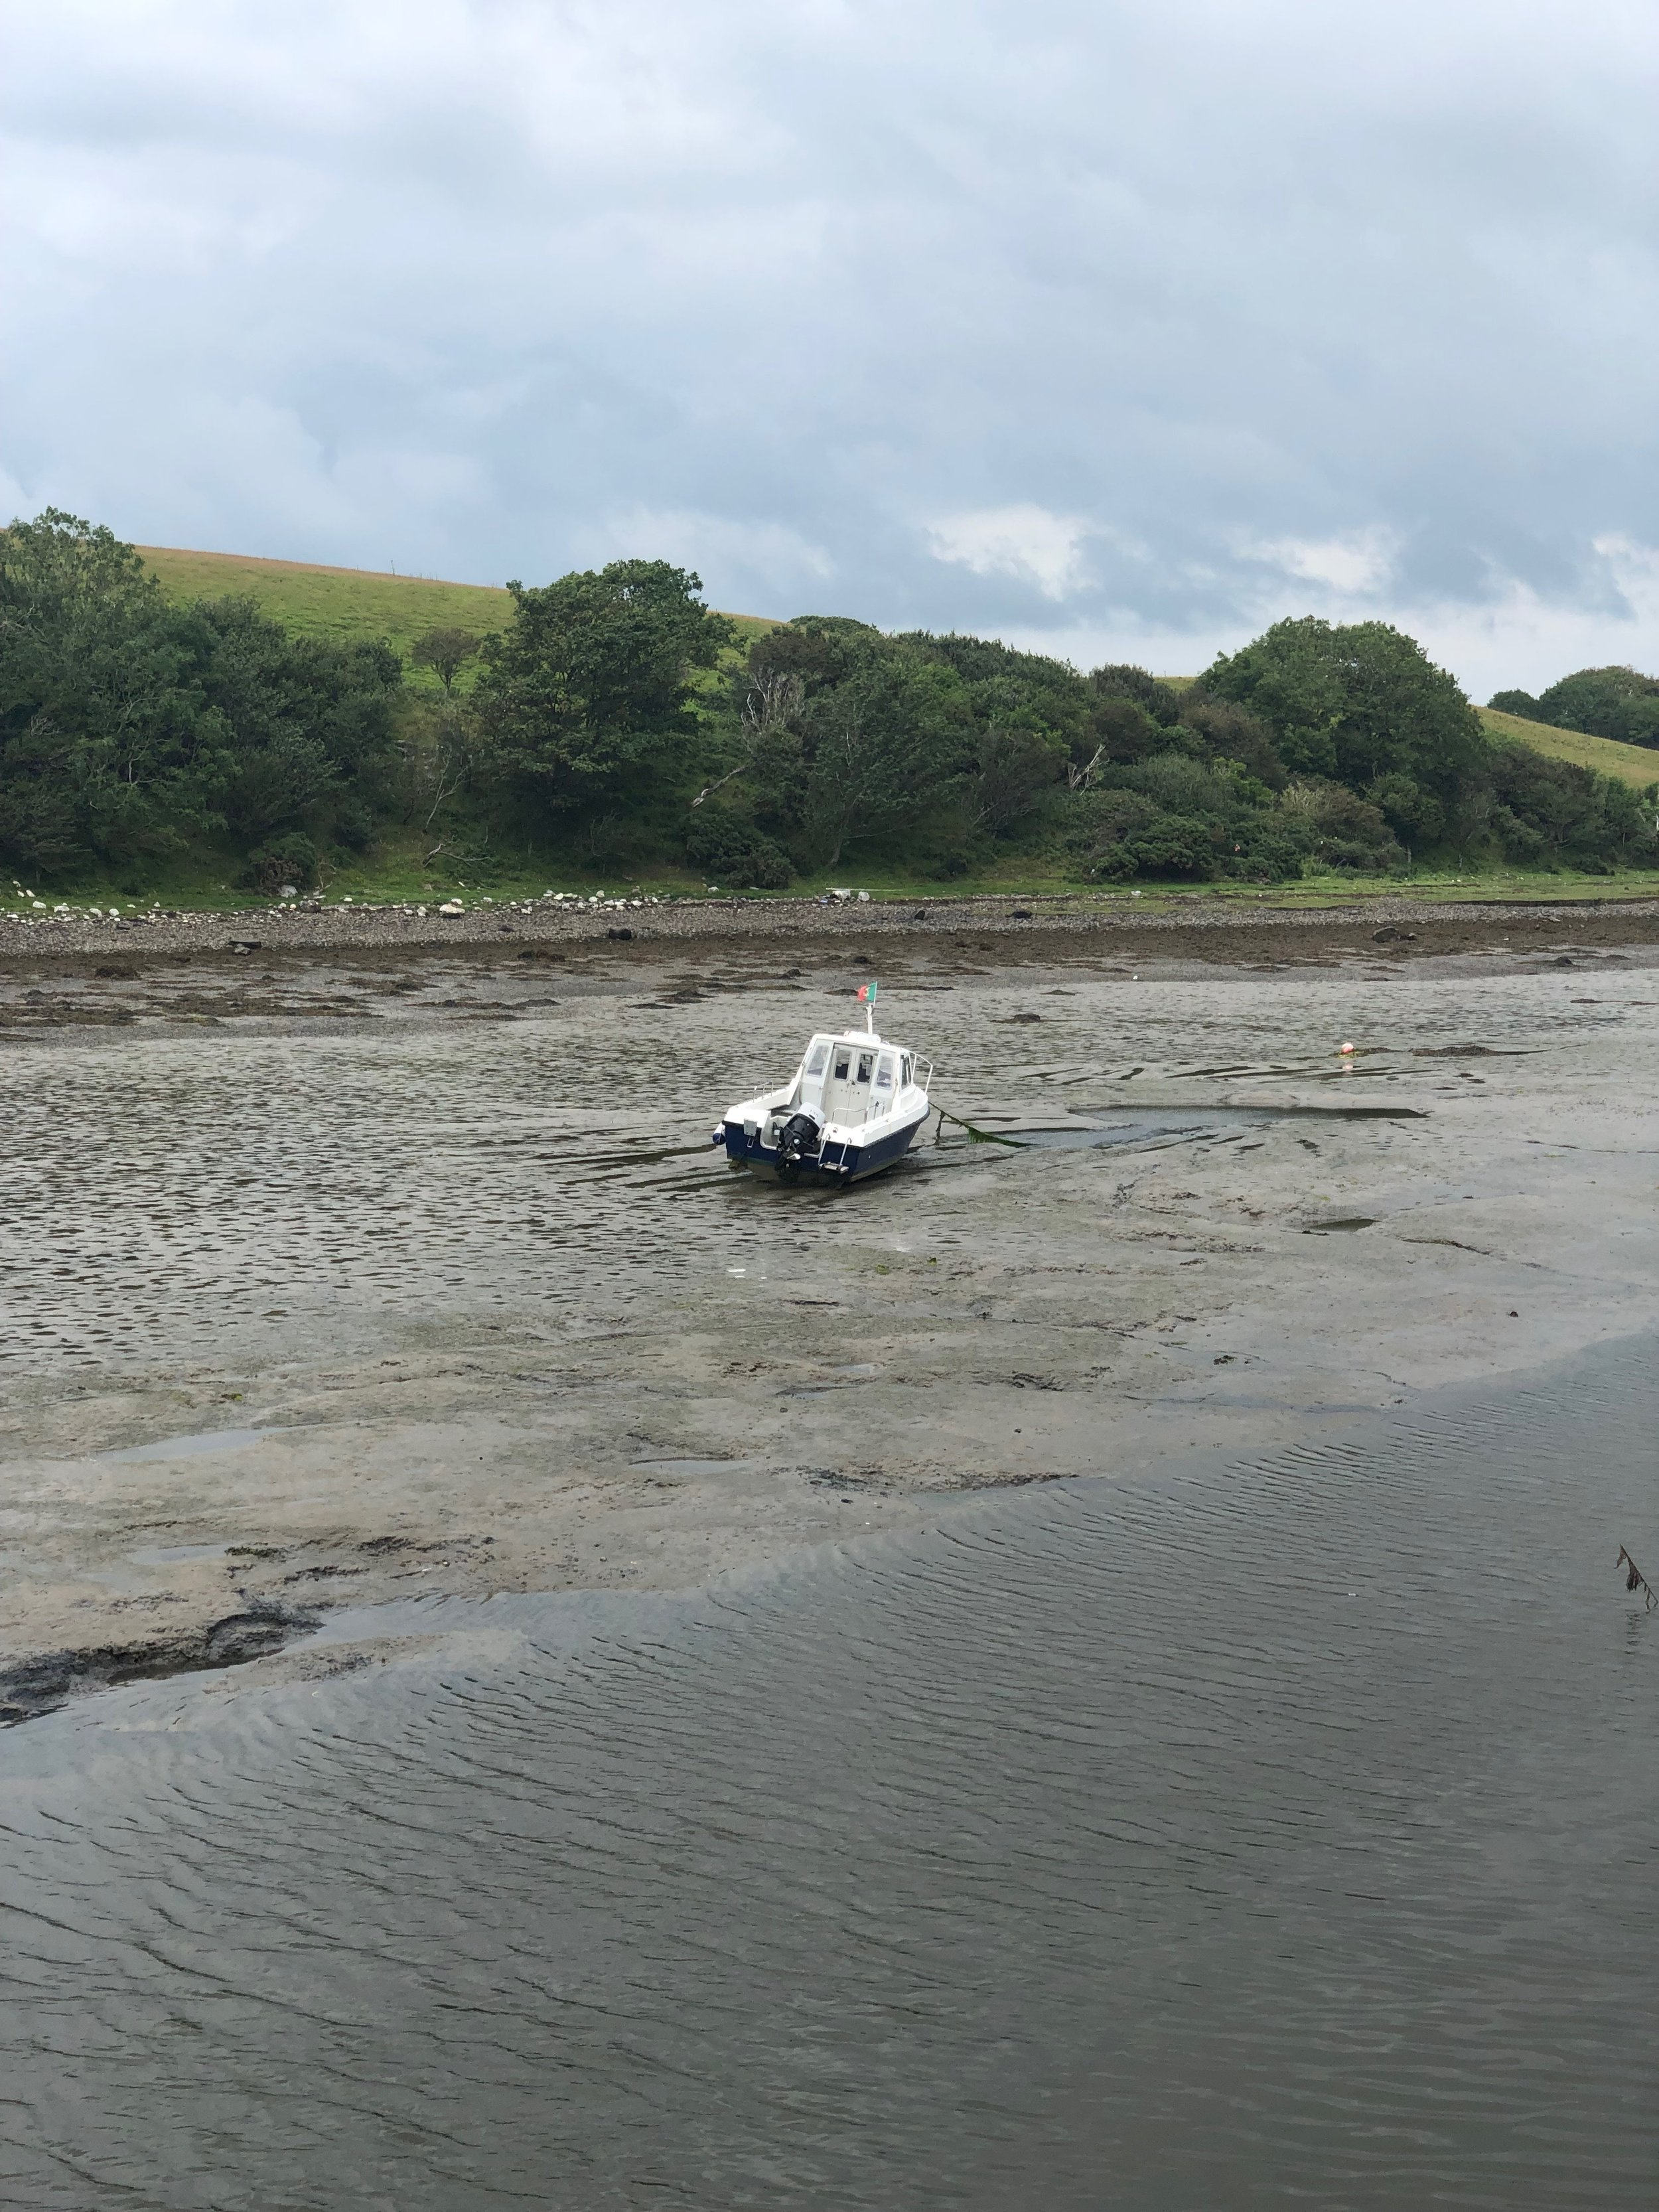 Tides in all of the coastal areas we visited were 3-4 feet. In a few hours this boat would floating again.